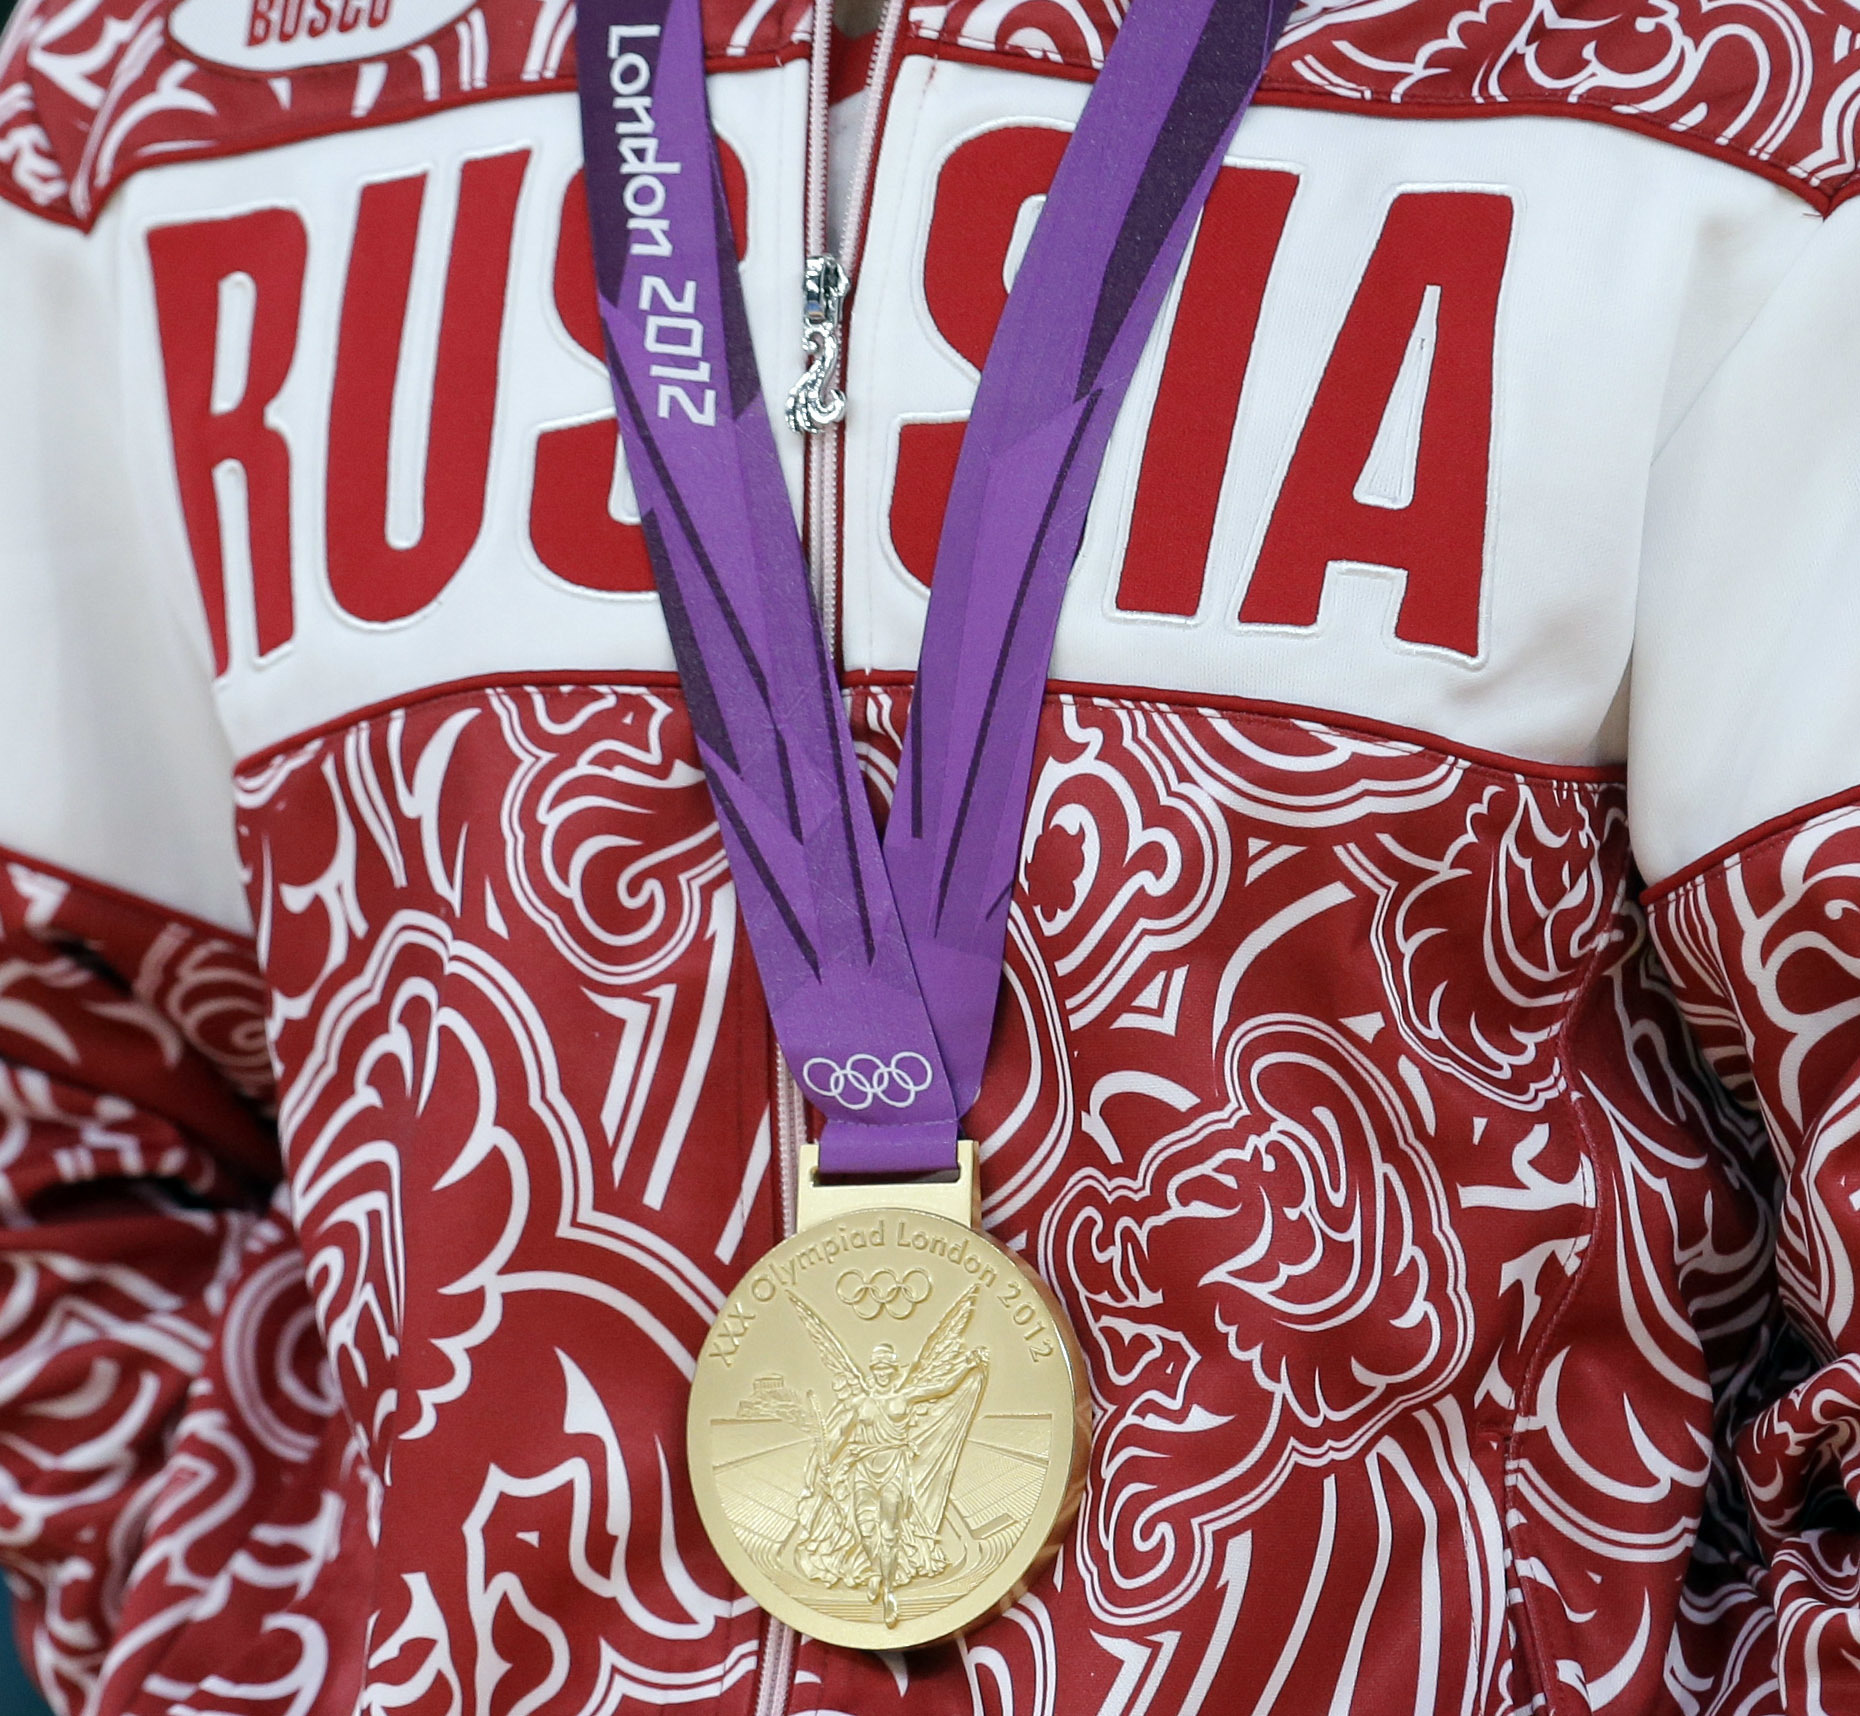 FILE - In this Aug. 10, 2012 file photo a gold medalist from Russia participates in a medals ceremony at the 2012 Summer Olympics in London. The IOC's ruling 15-member executive board will meet Sunday, July 24, 2016 via teleconference to weigh the unprece